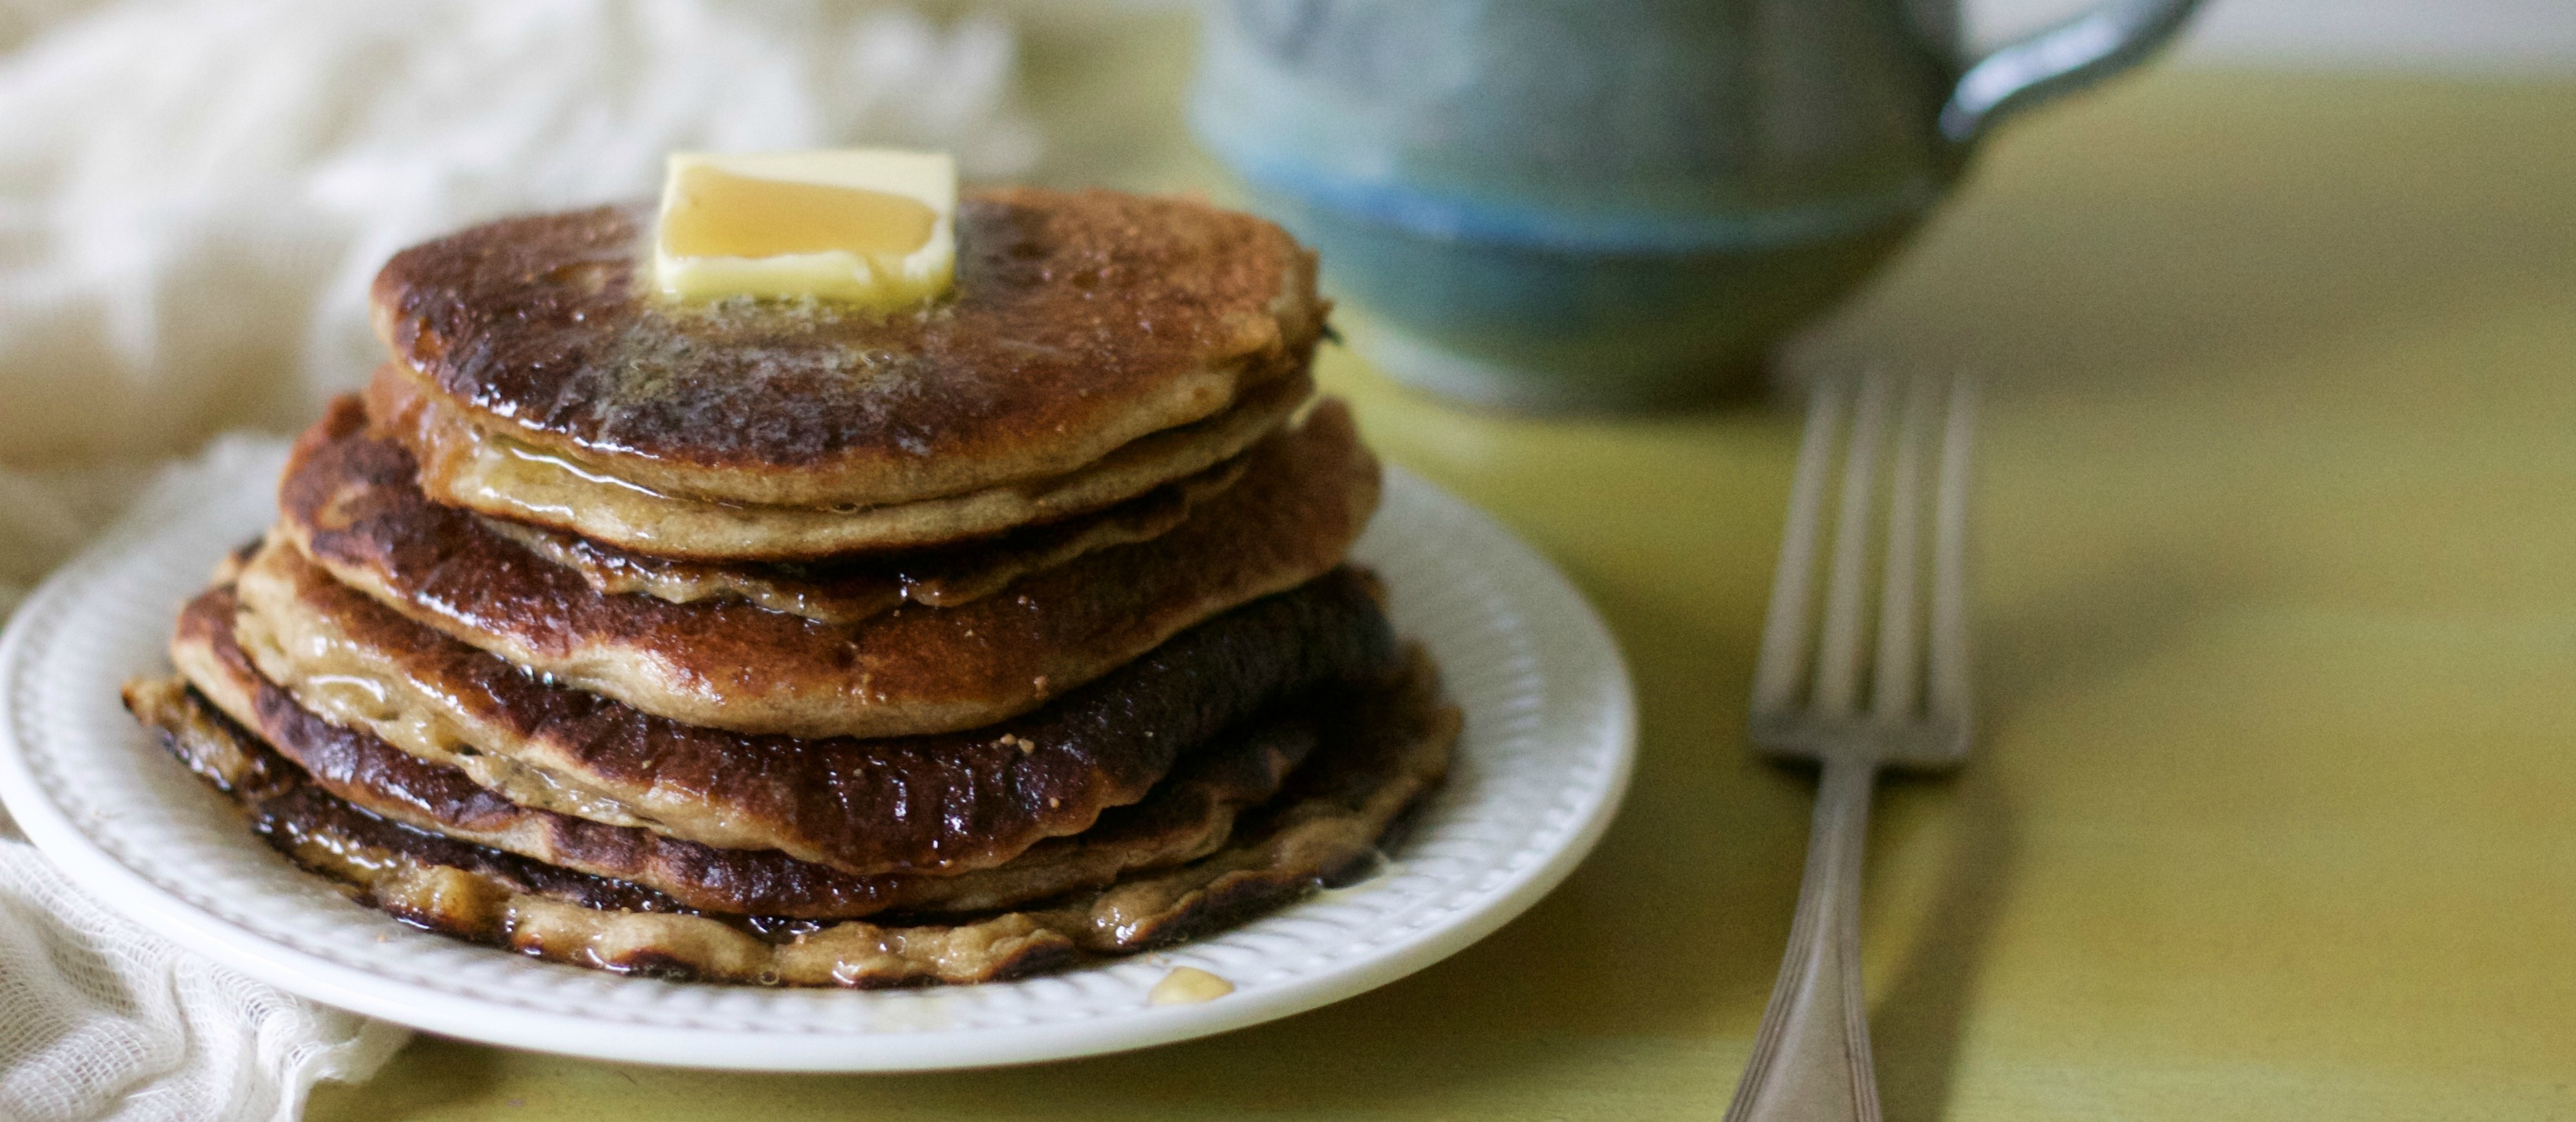 BUCKWHEAT PANCAKES (INSPIRED BY THE LONG WINTER)